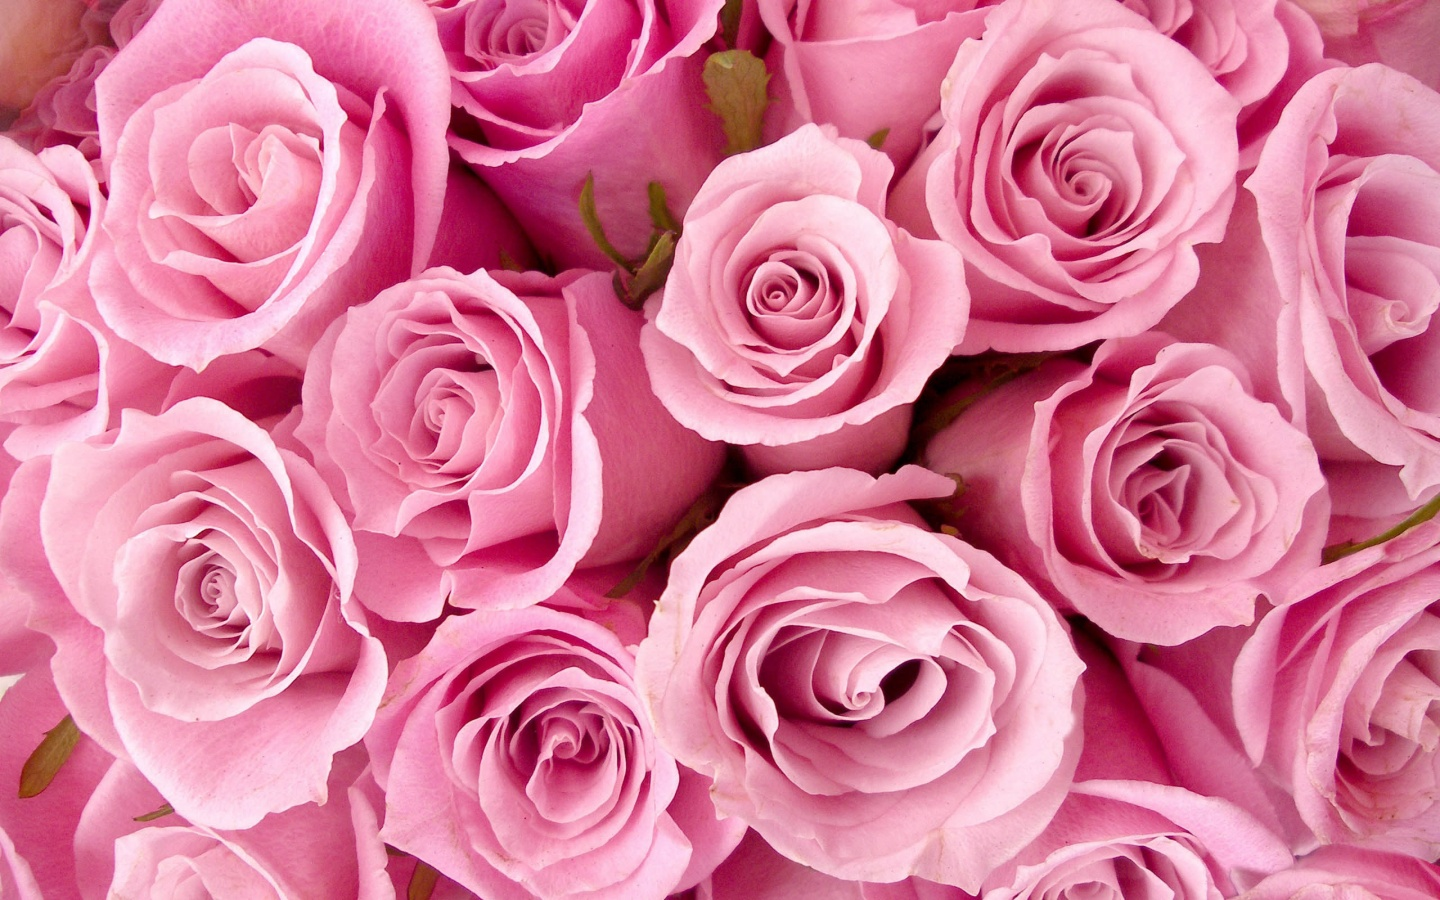 Special Pink Roses Wallpapers In Jpg Format For Free Download